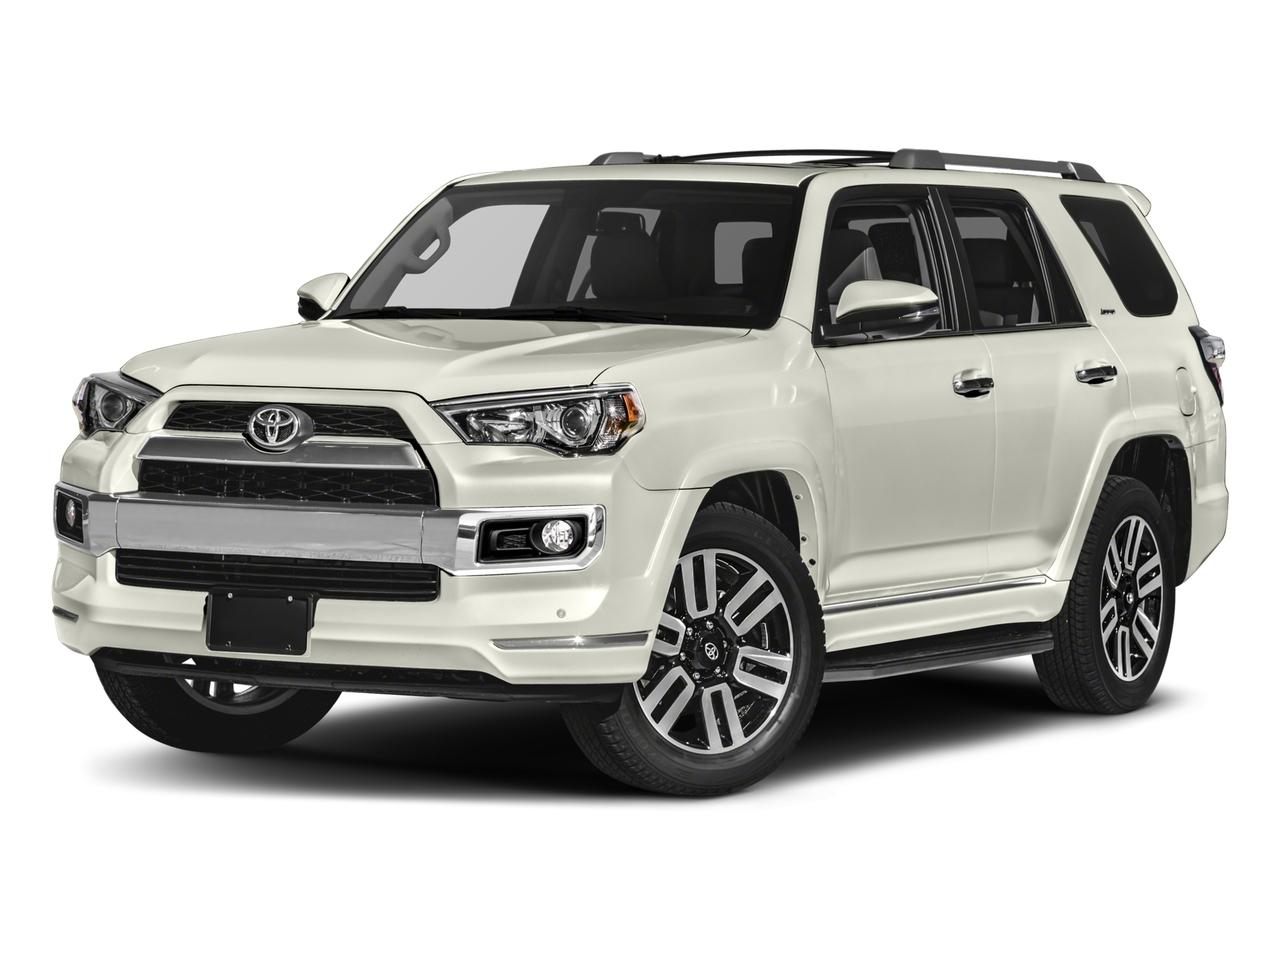 2017 Toyota 4Runner Vehicle Photo in BOONVILLE, IN 47601-9633